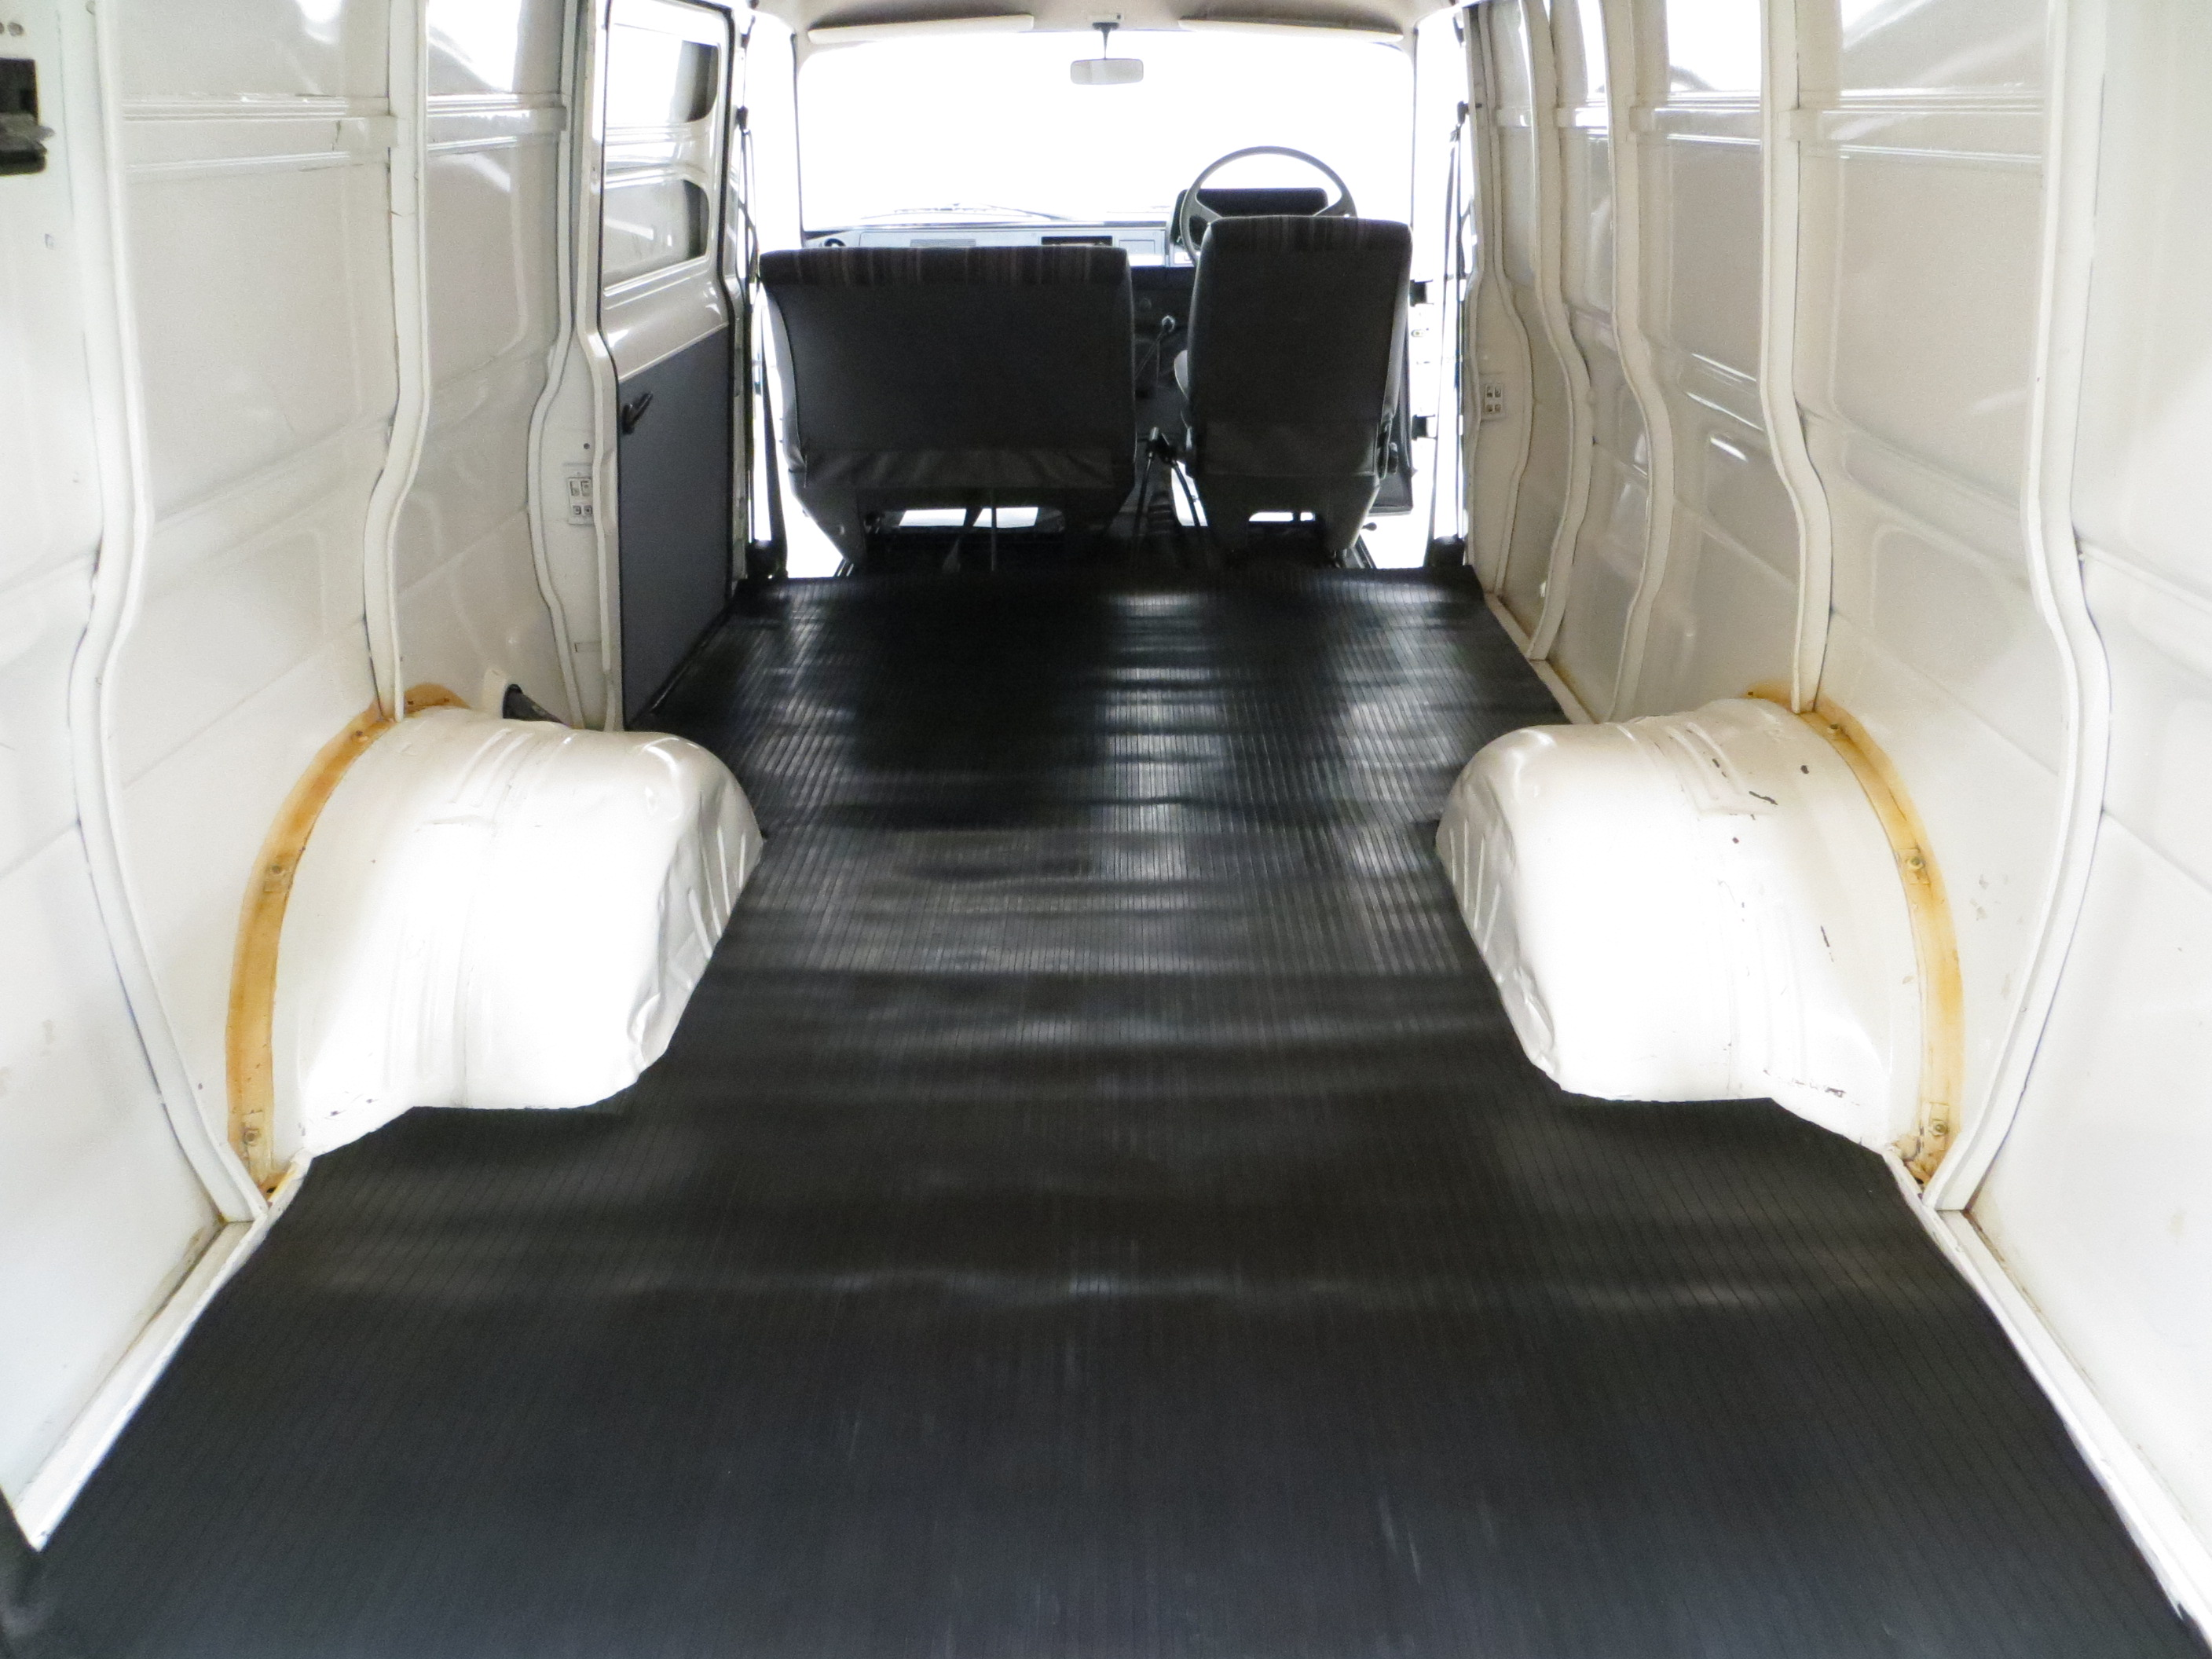 ply floors premium mats watch transit ford youtube on van better linings line x spray liners than floor